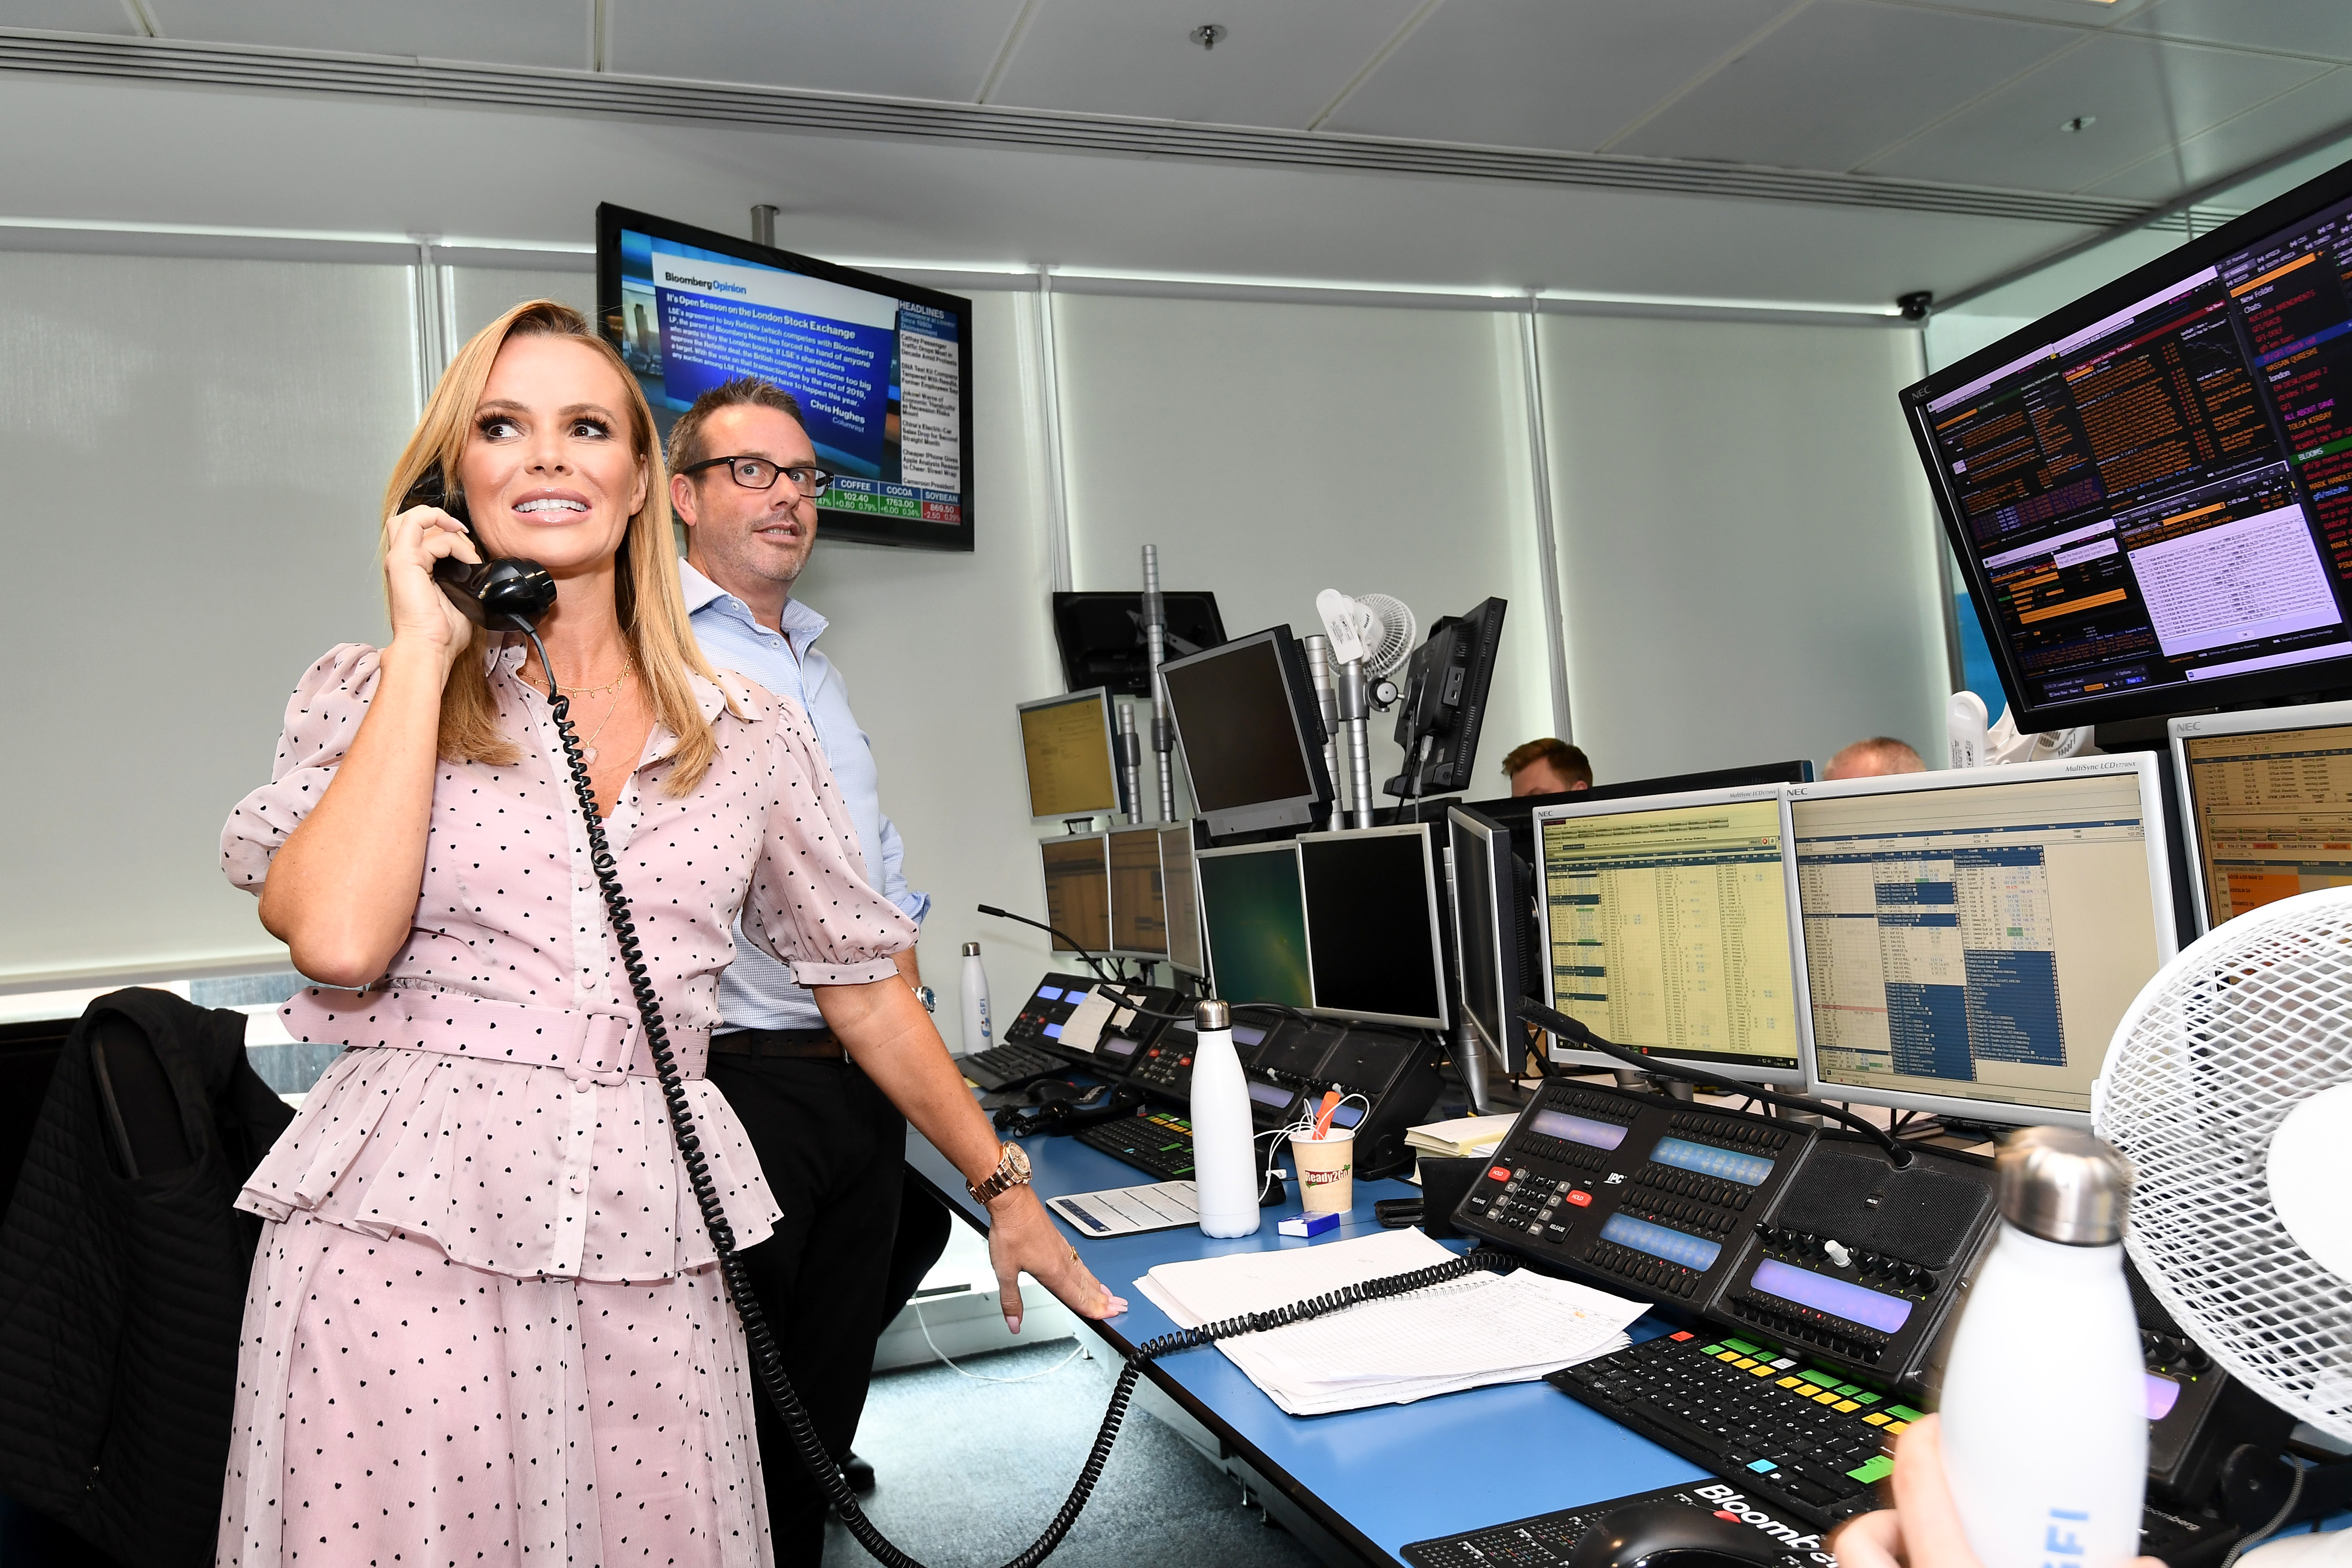 LONDON, ENGLAND - SEPTEMBER 11: Amanda Holden representing Battersea Dogs and Cats, makes a trade at the GFI Charity Day to commemorate the 658 employees who perished on September 11, 2001 in the World Trade Center attacks on September 11, 2019 in London, England. (Photo by Jeff Spicer/Getty Images for GFI )